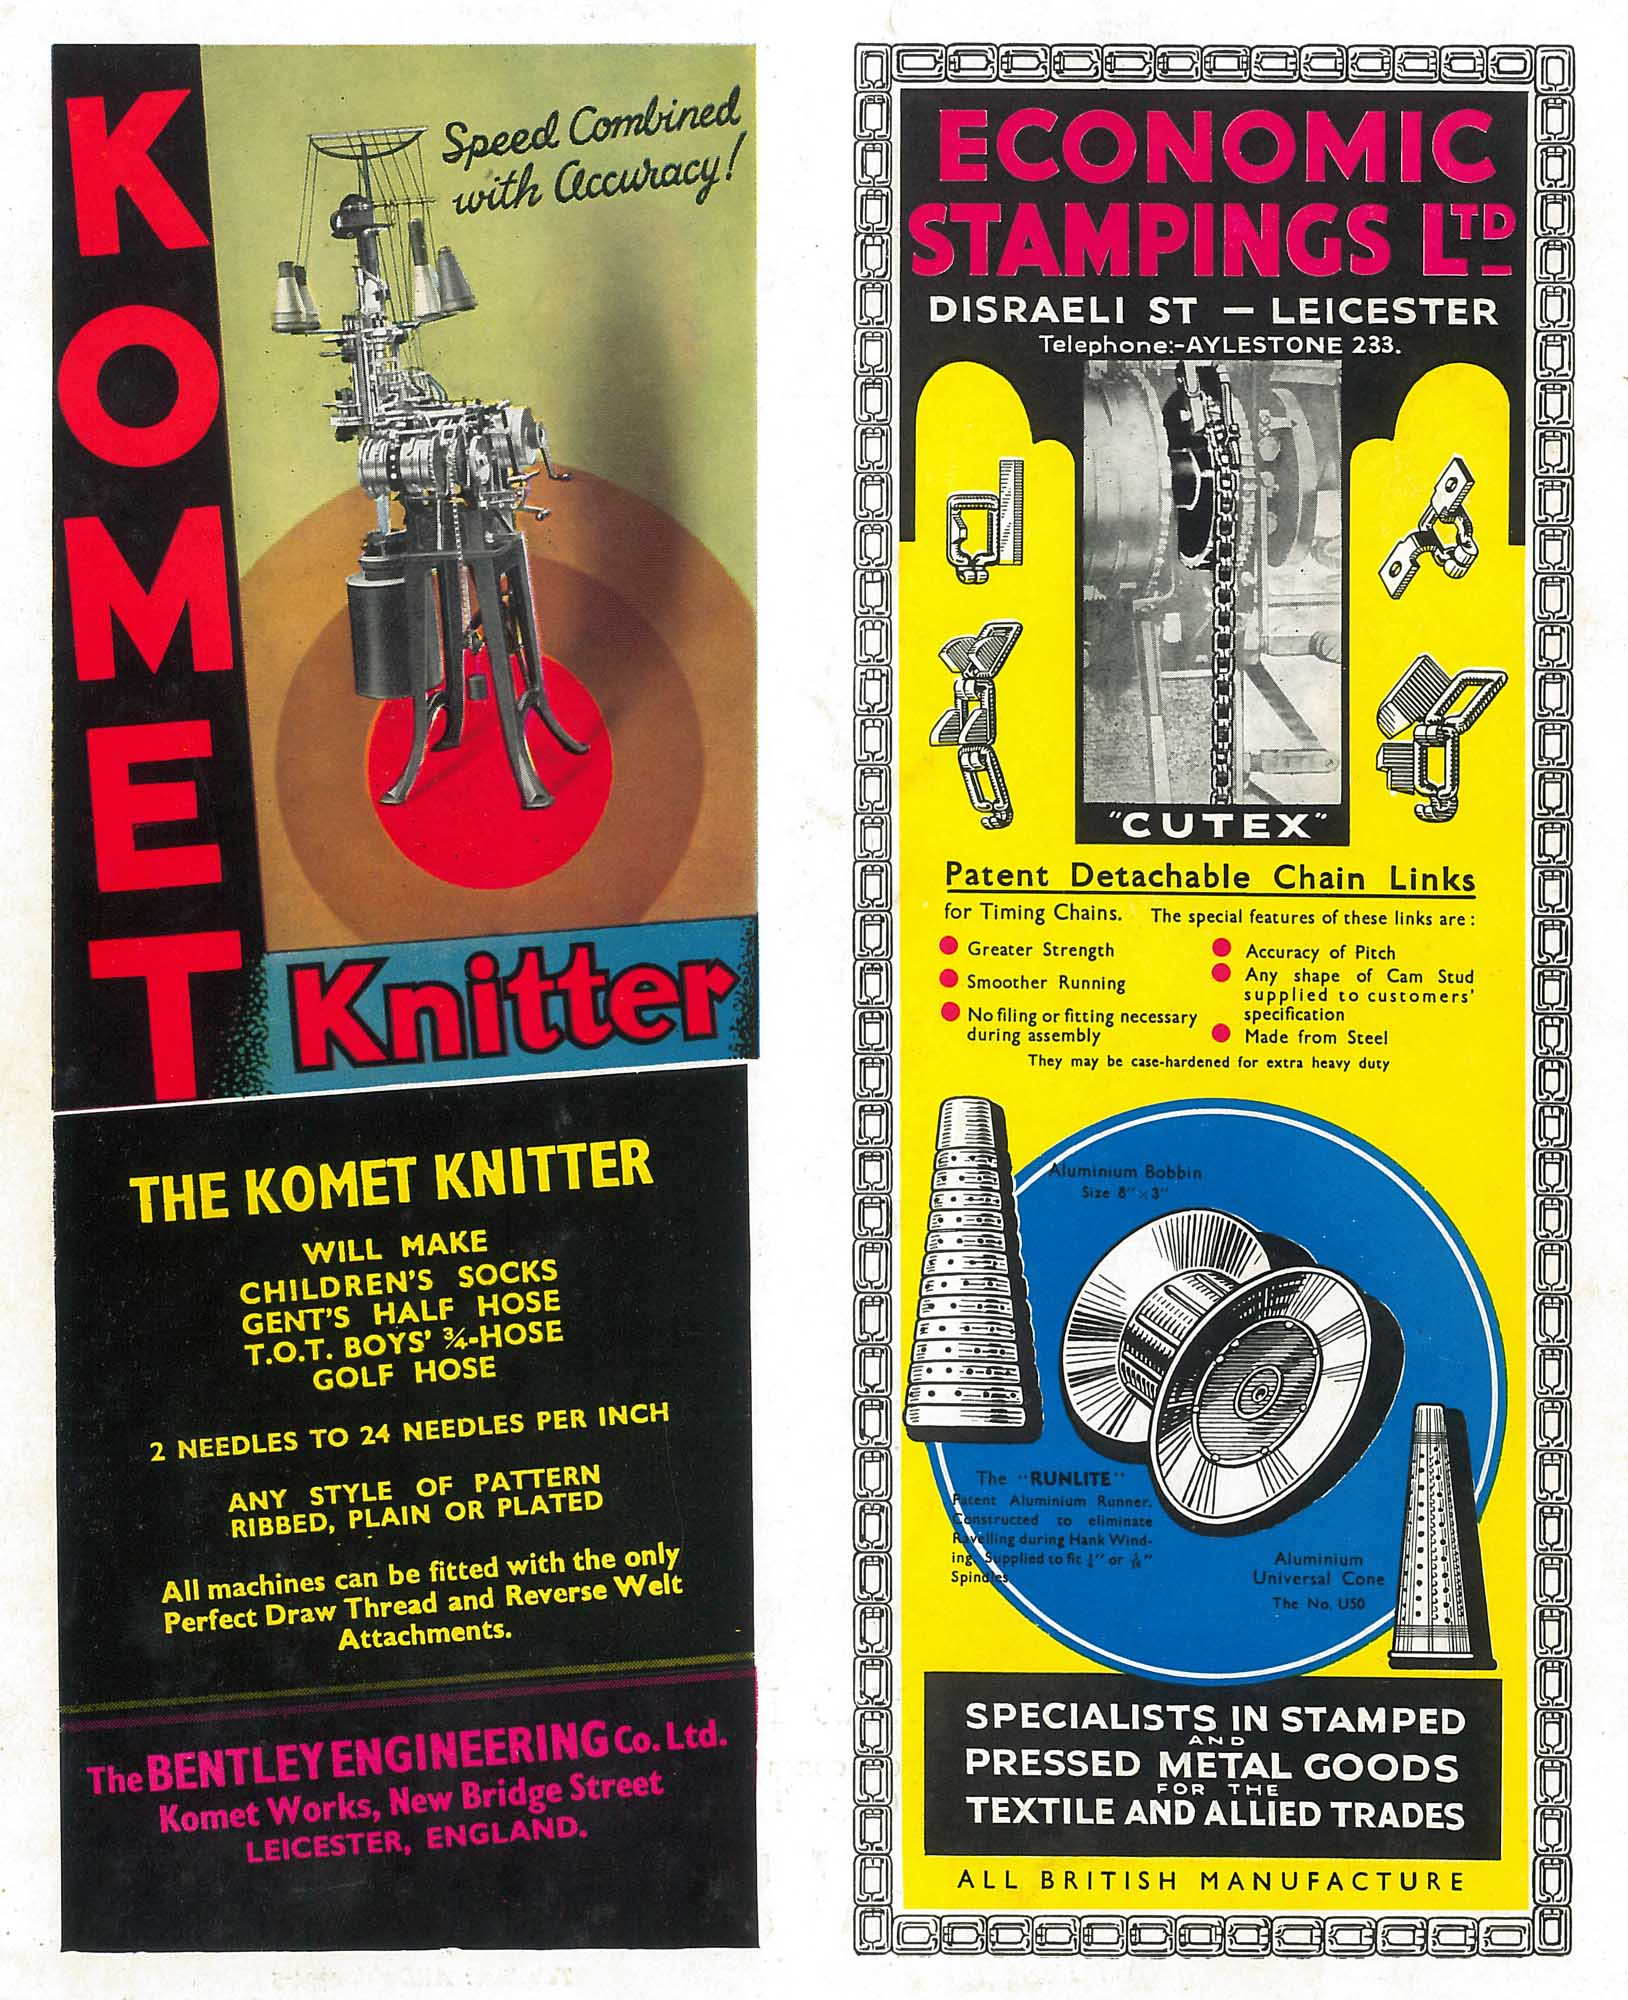 1938 adverts for Leicester based engineering companies, including a Komet knitting machine -